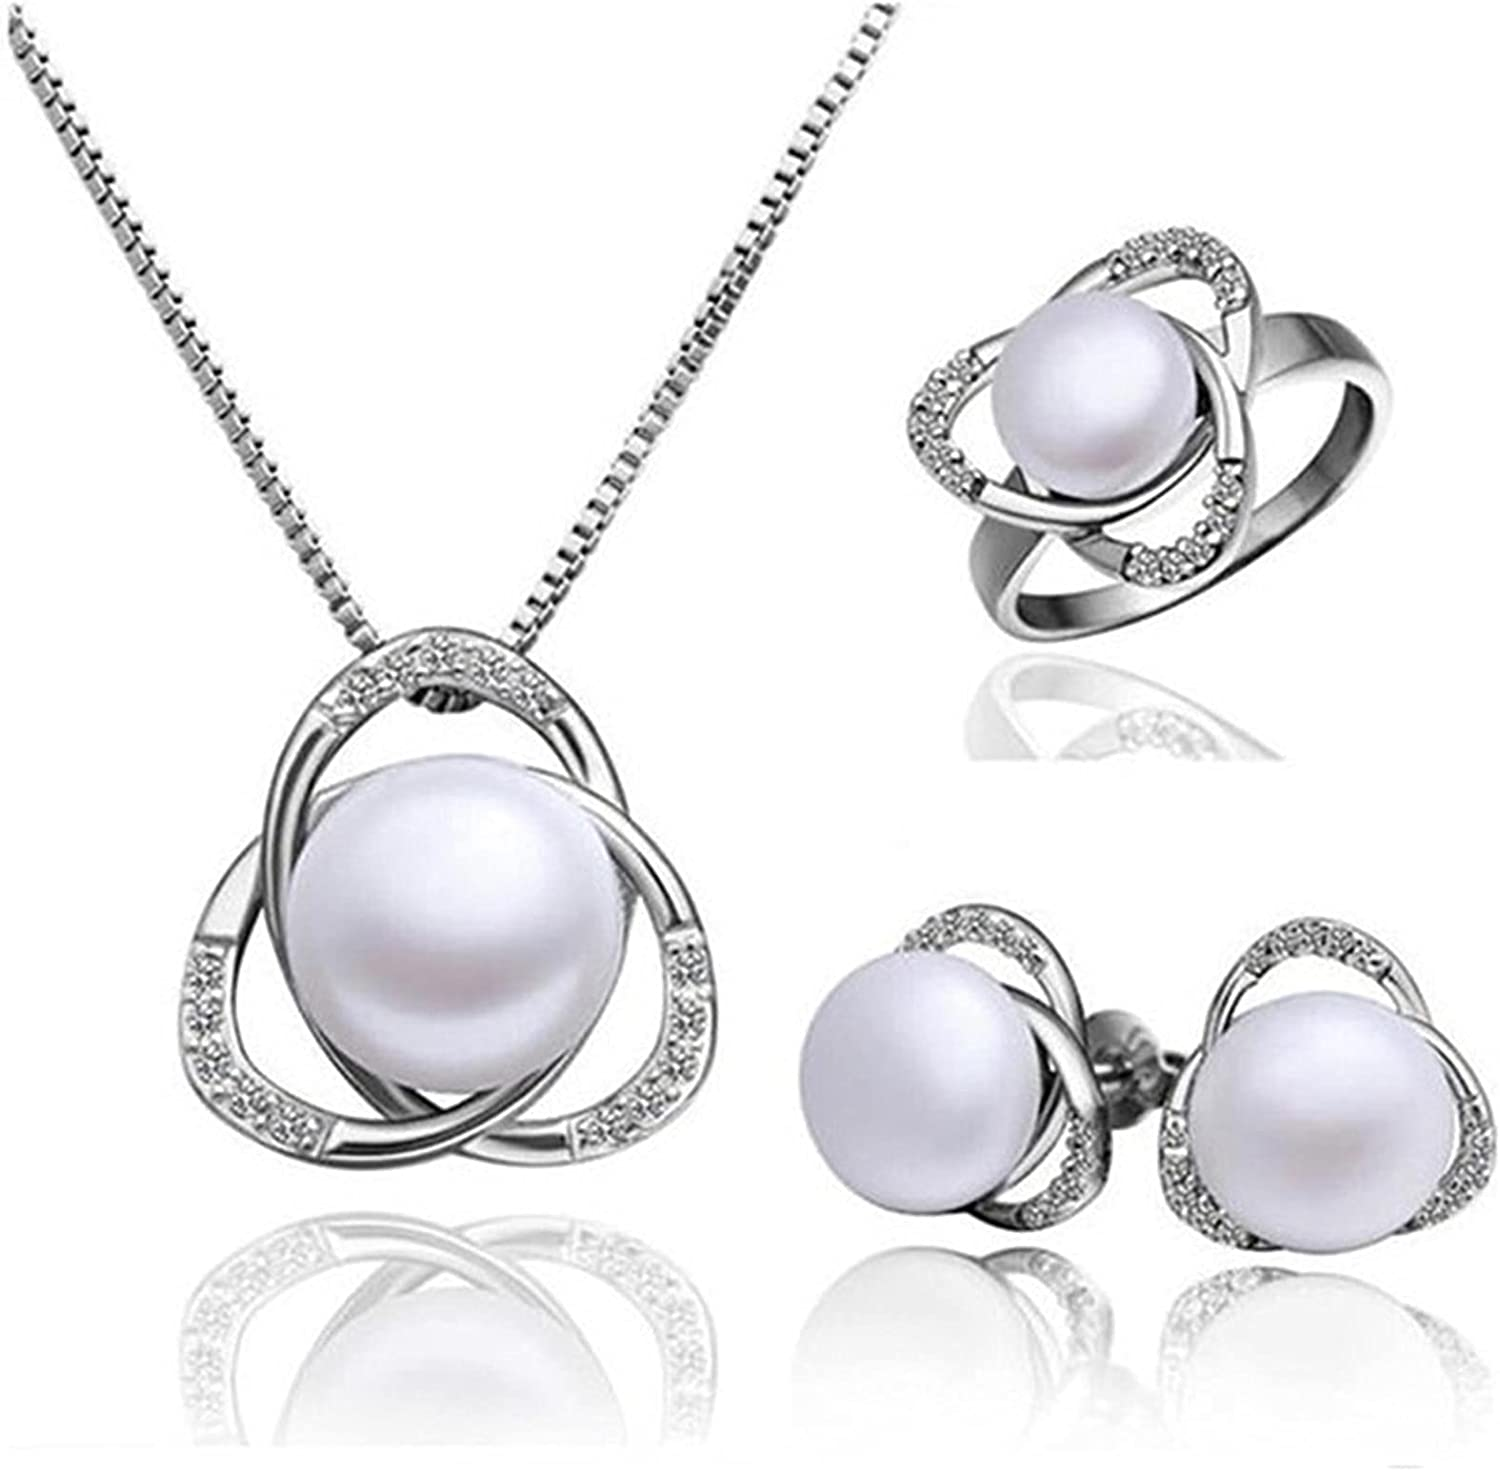 QWEOP Imitation Pearls Necklace Earrings Rings Set Rhinestones Bridal Wedding Jewelry Gifts for Women